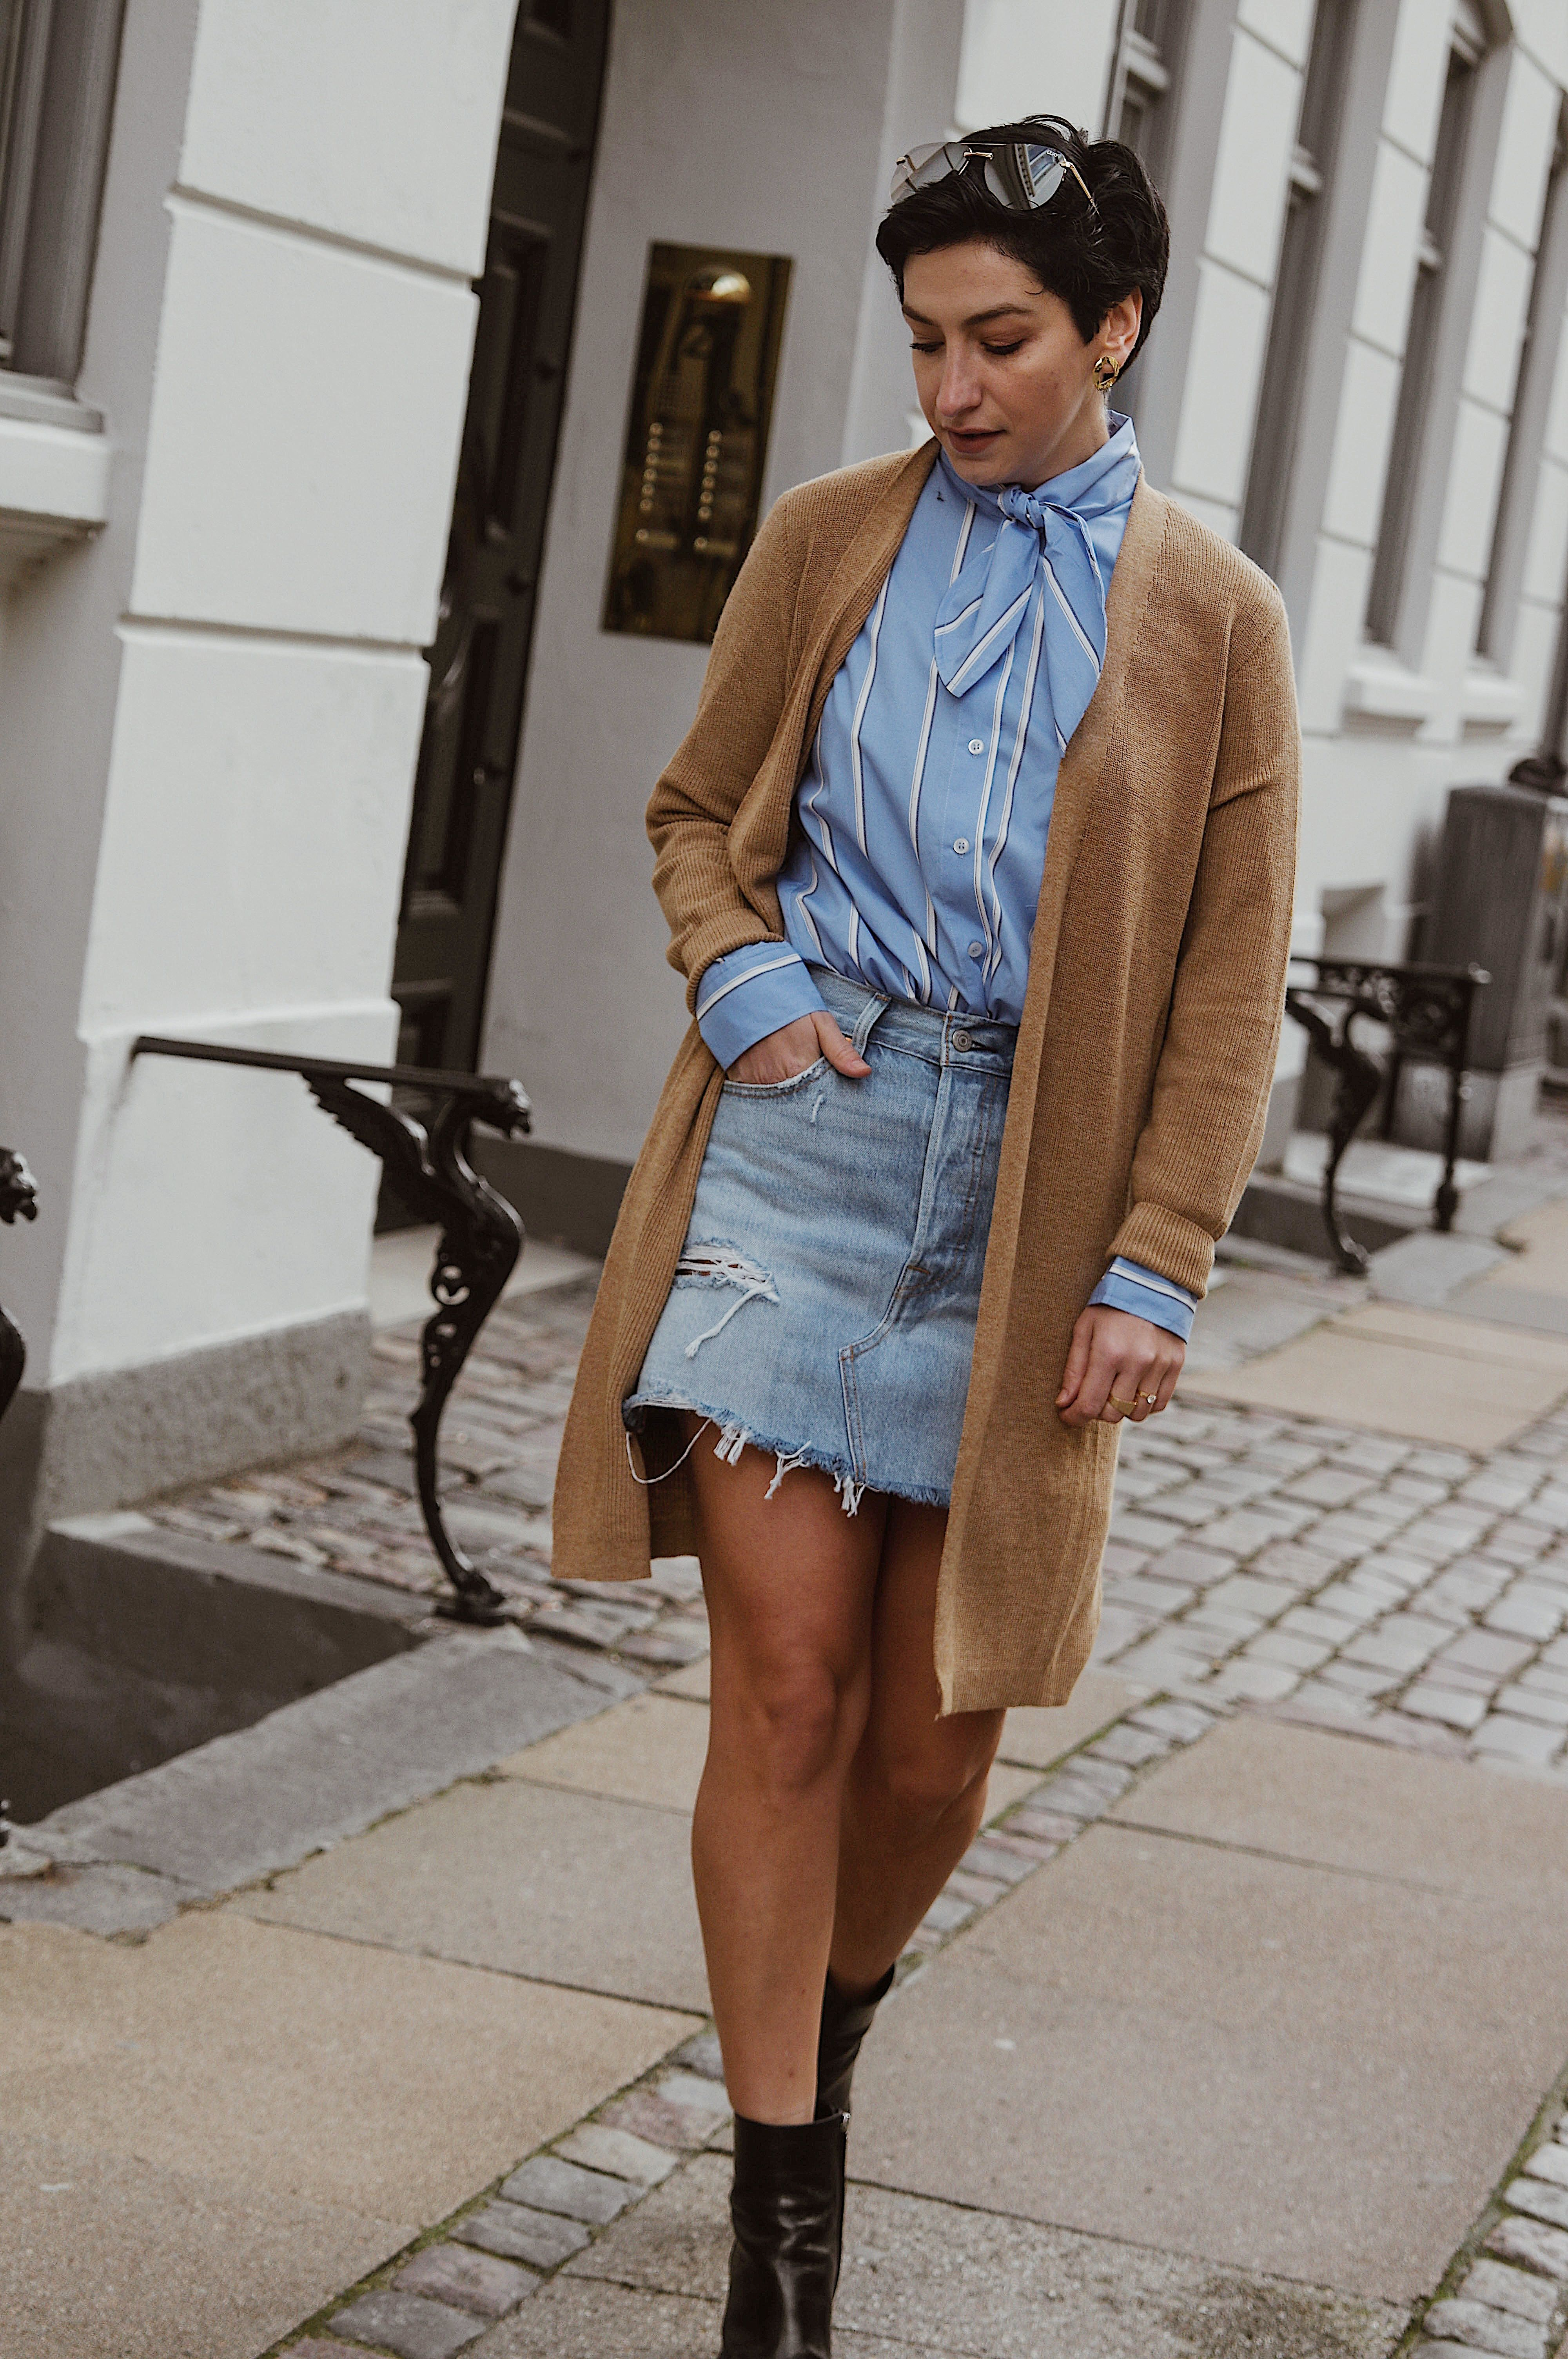 d56237cb5bf Spring Stylish outfit ideas, Scandinavian Streetstyle #springstyle  #springoutfit #outfitideas #streetstyle #scandinavanstyle #style Instagram @ beyouverywell ...